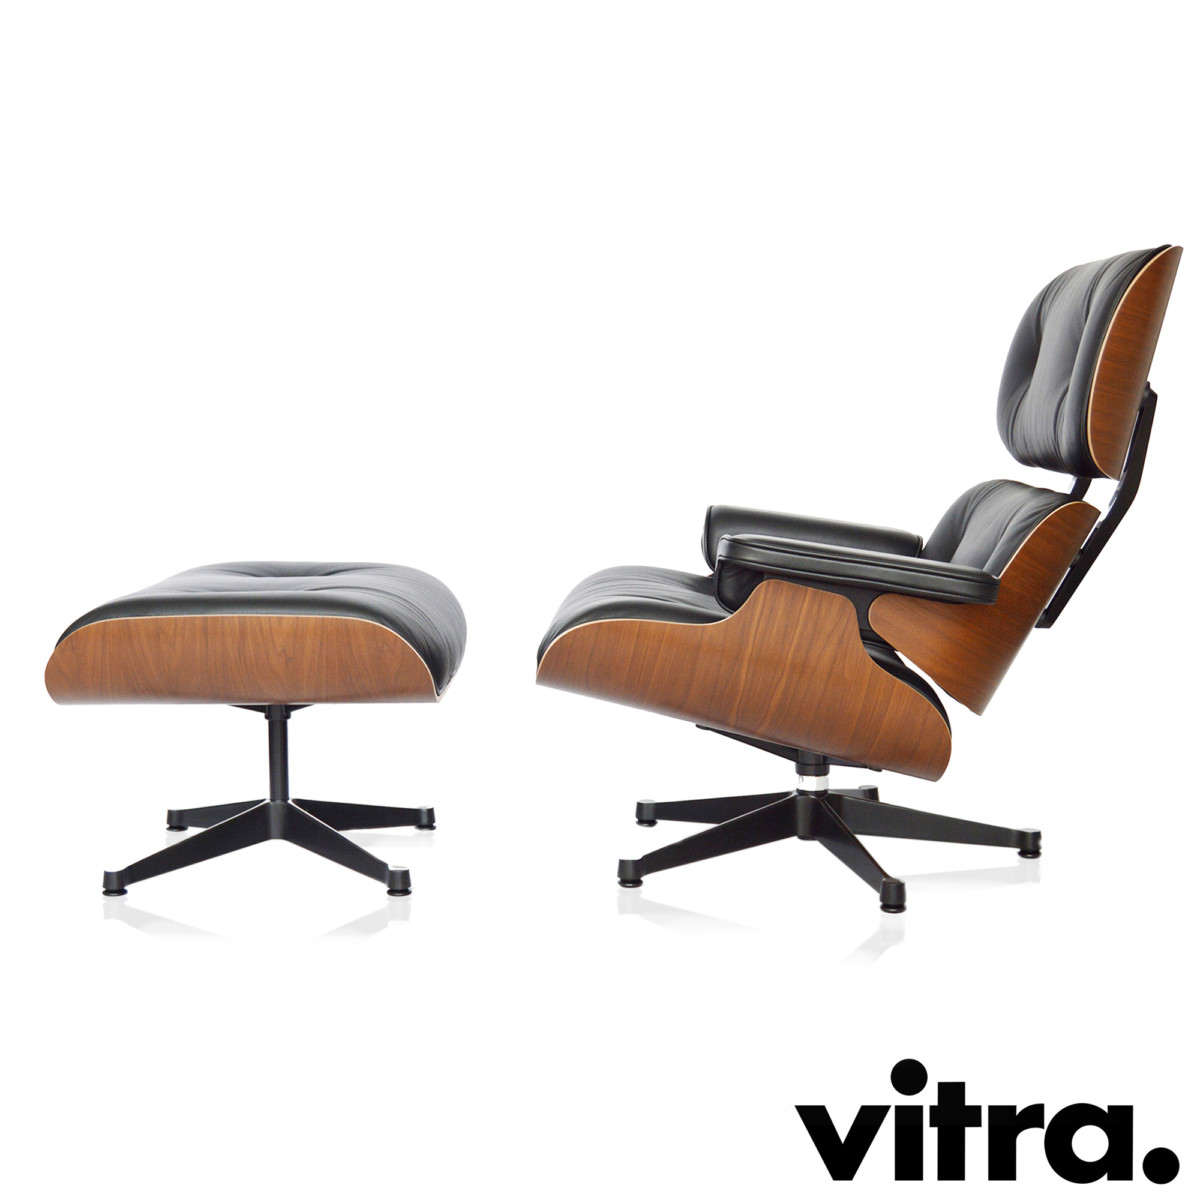 Eames Lounge Sessel Vitra Eames Lounge Chair Im Design Sortiment Von Midmodern